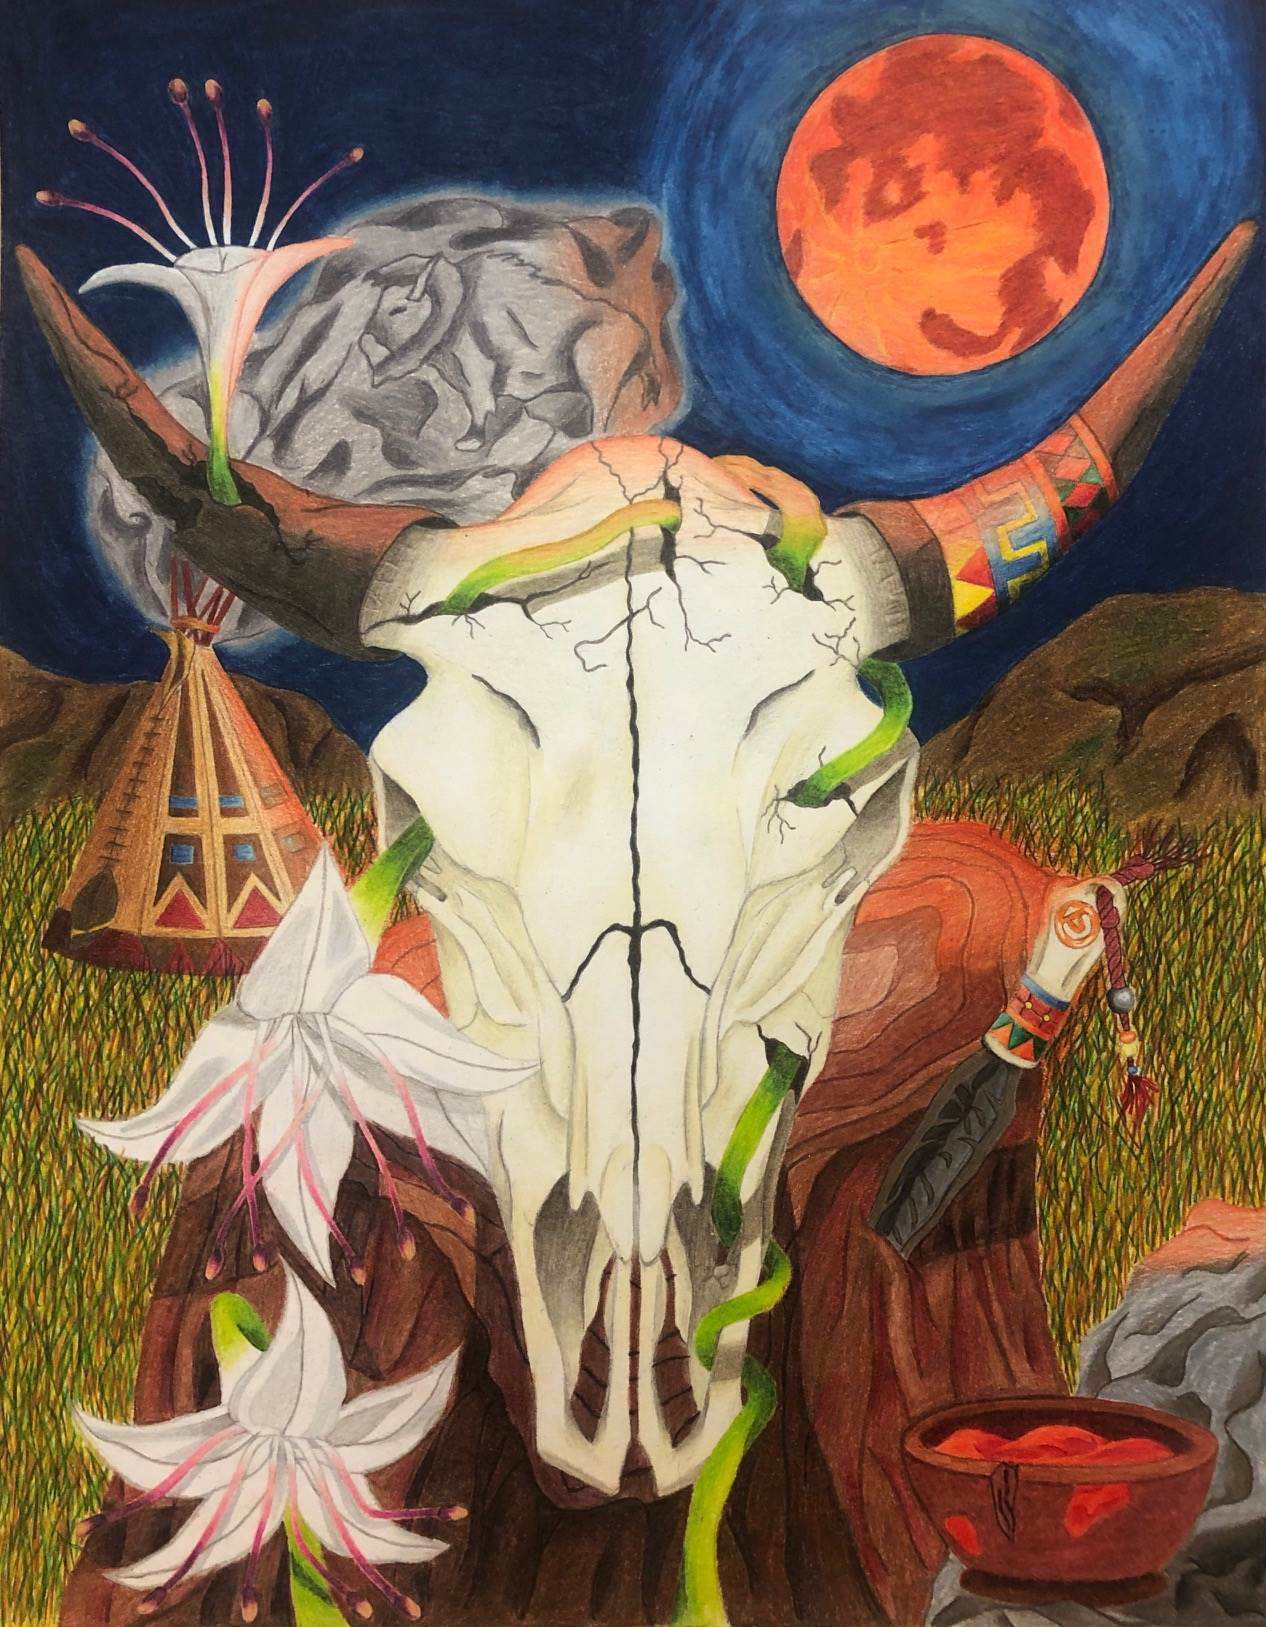 Cows head with moon - Painted